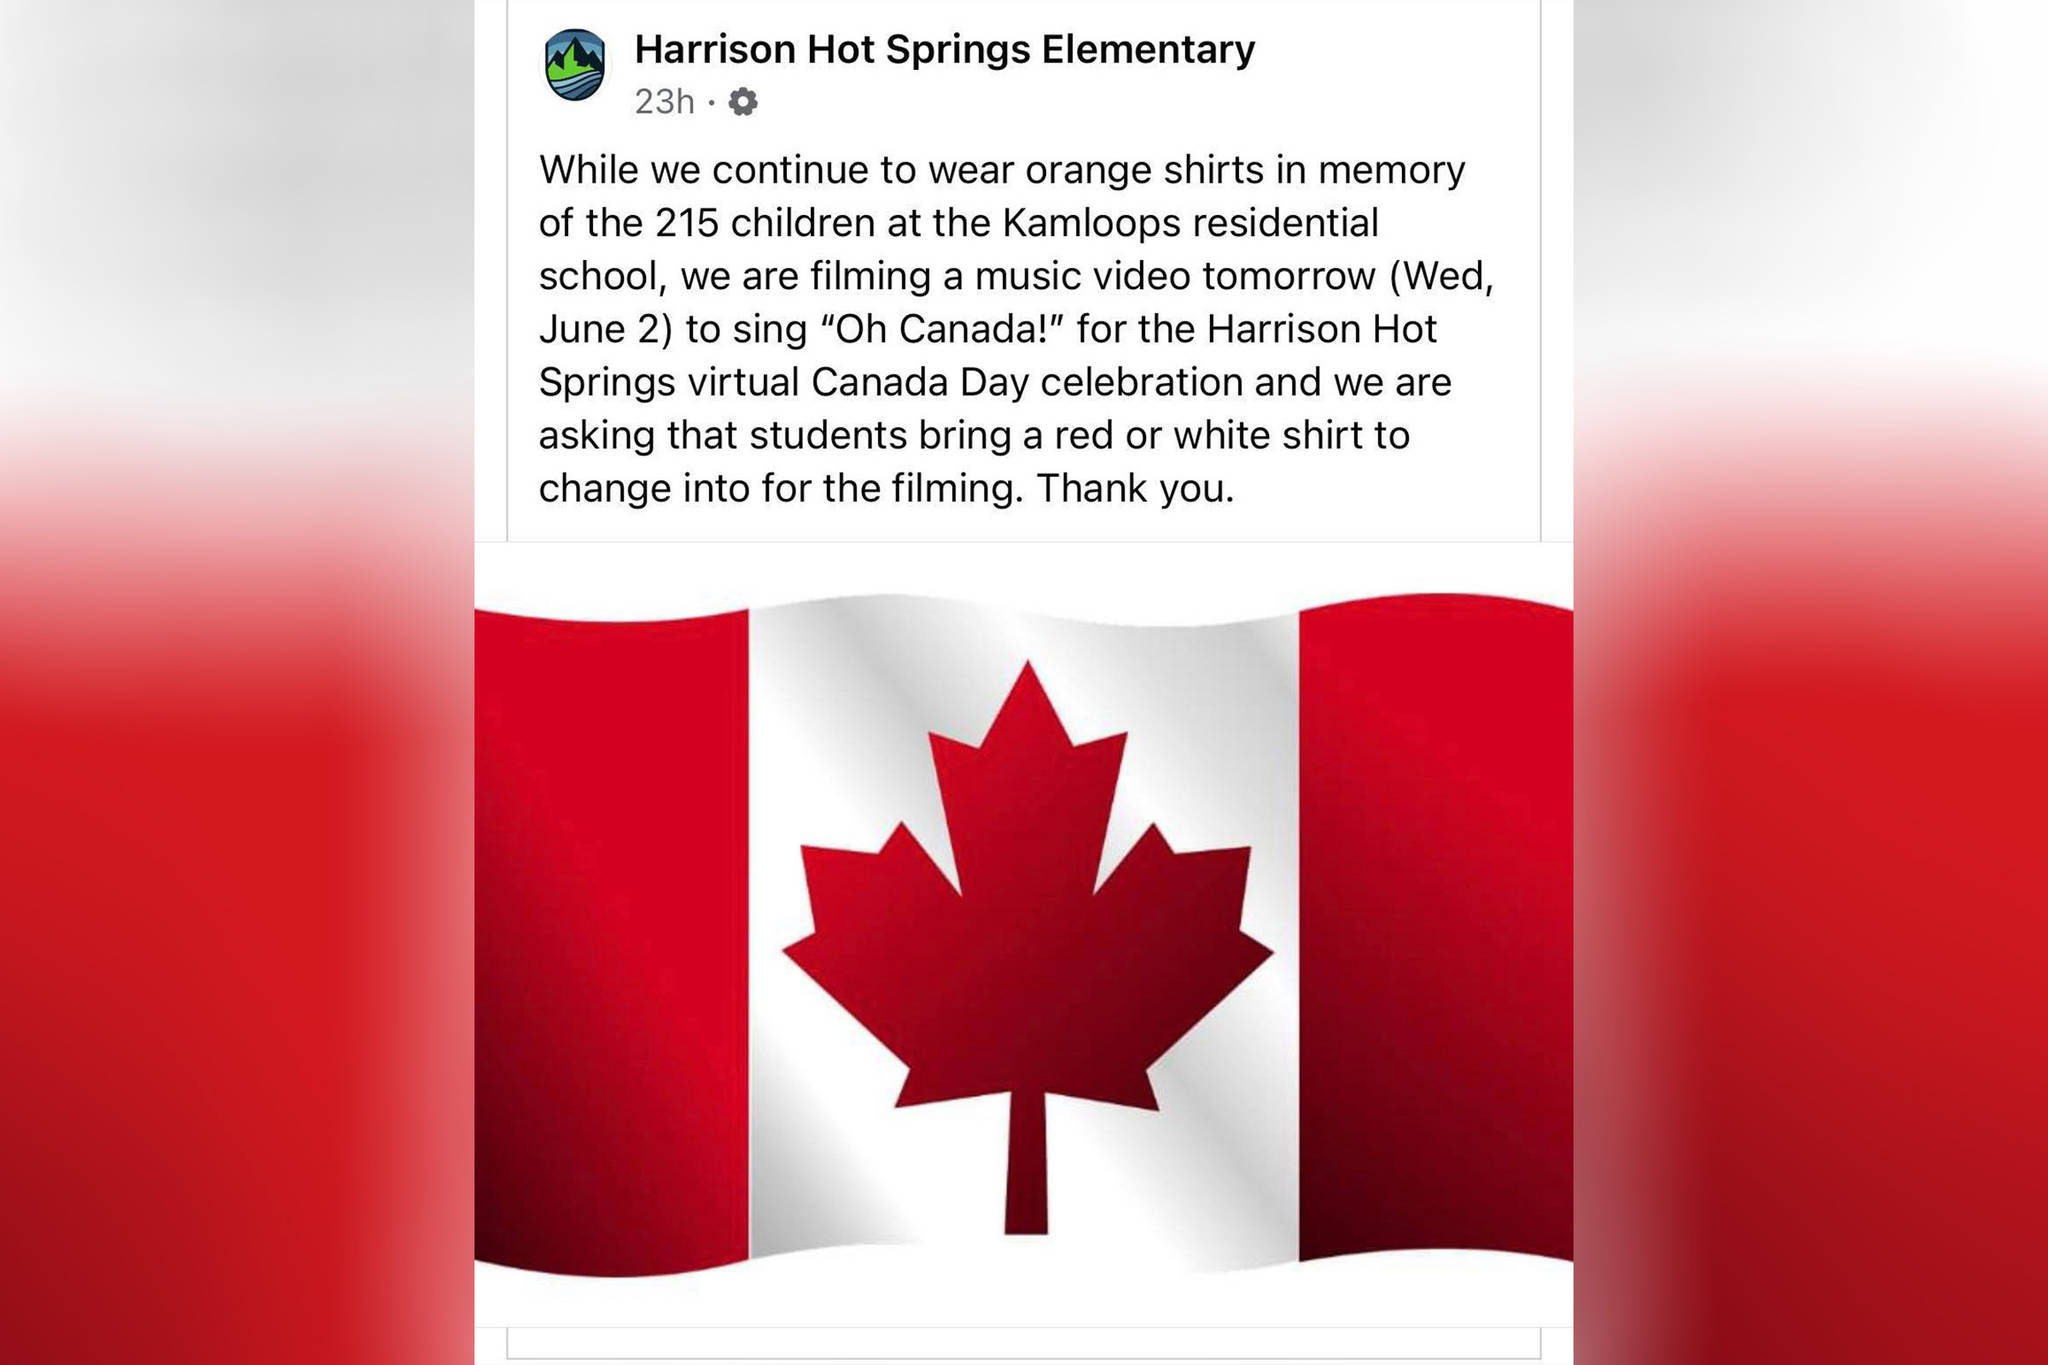 A deleted June 1 post of Harrison Hot Springs Elementary's plans to film an 'O Canada' music video for the village's virtual Canada Day celebration. School officials have since apologized and canceled the event. (Facebook/Harrison Hot Springs Elementary)